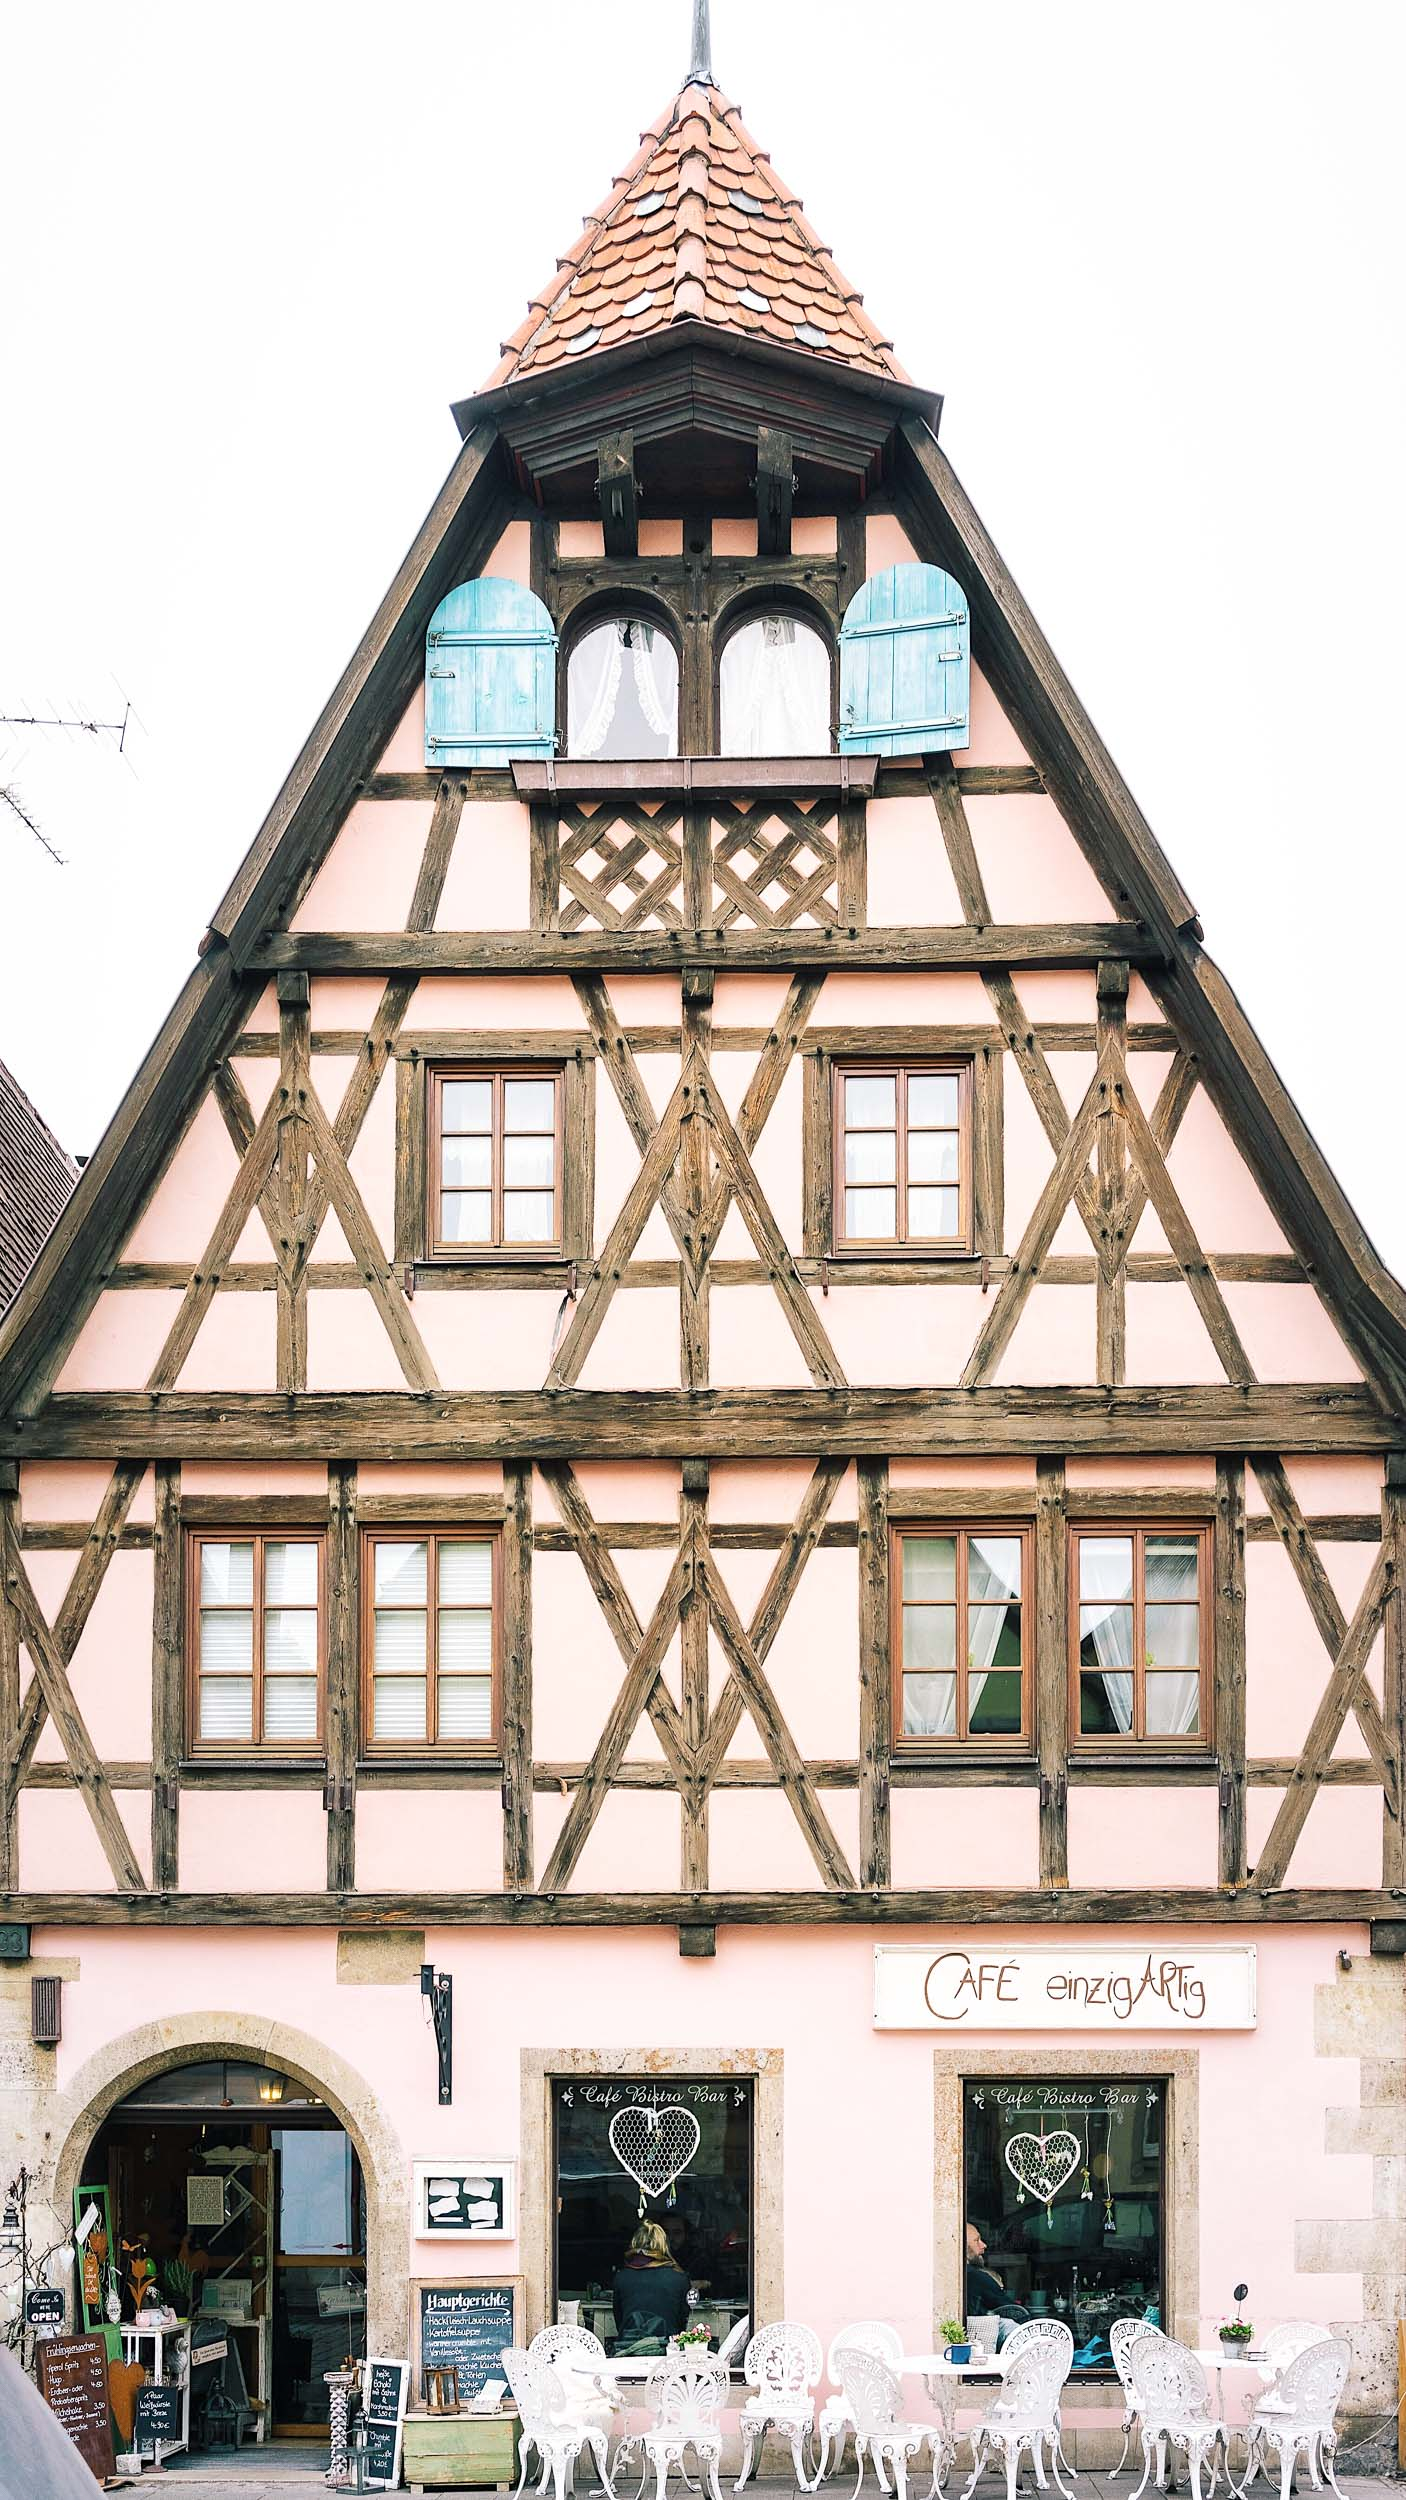 Typical German style buildings in Rothenburg